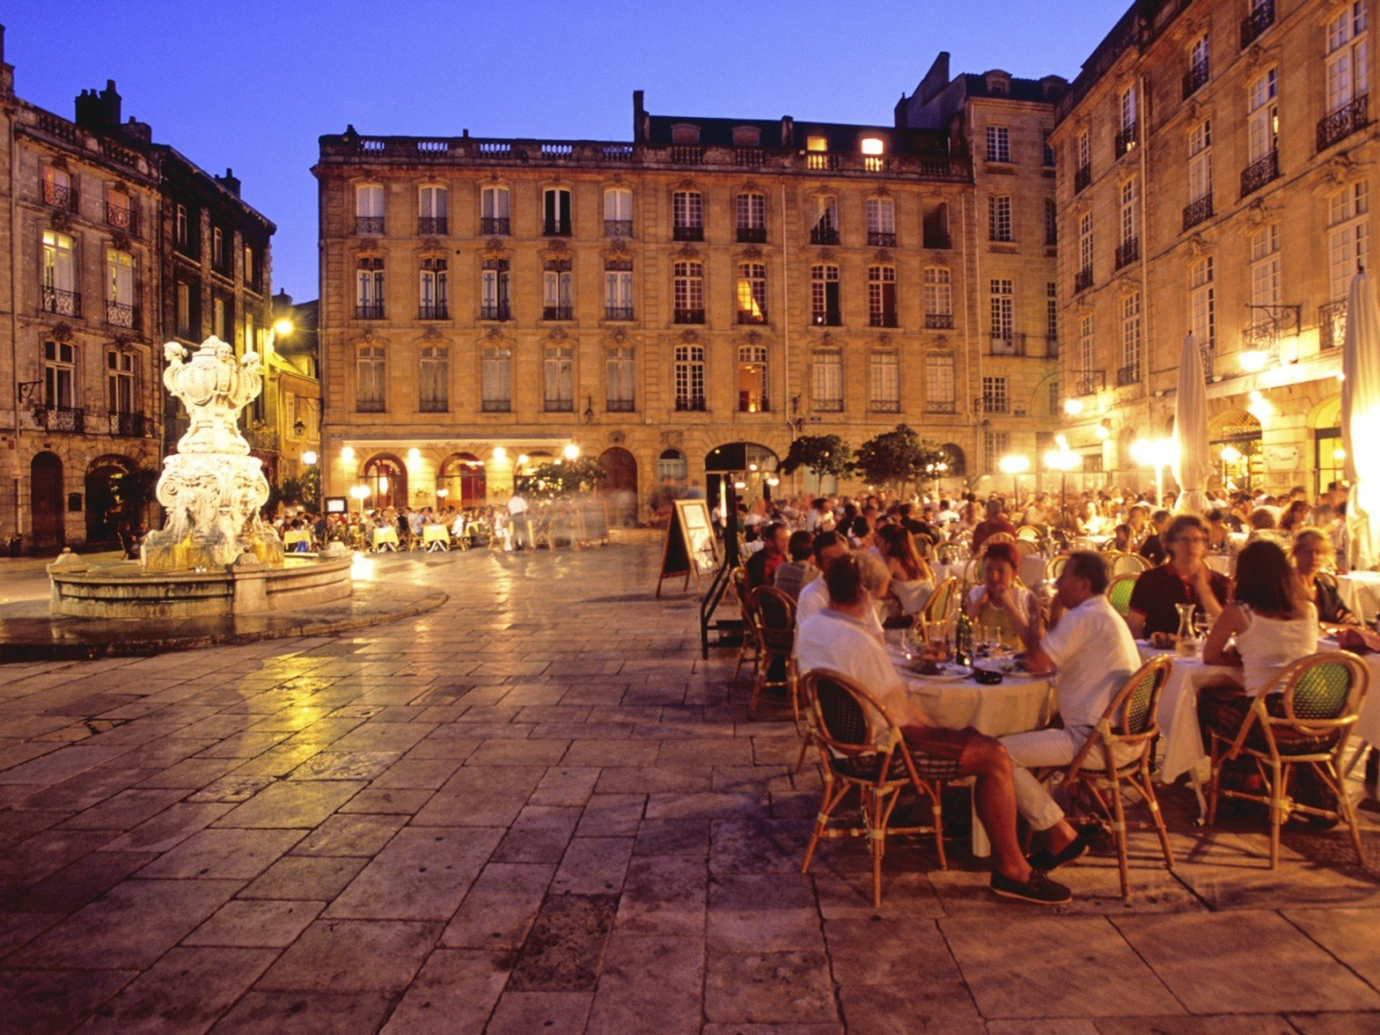 Outdoor eating in Bordeaux at night